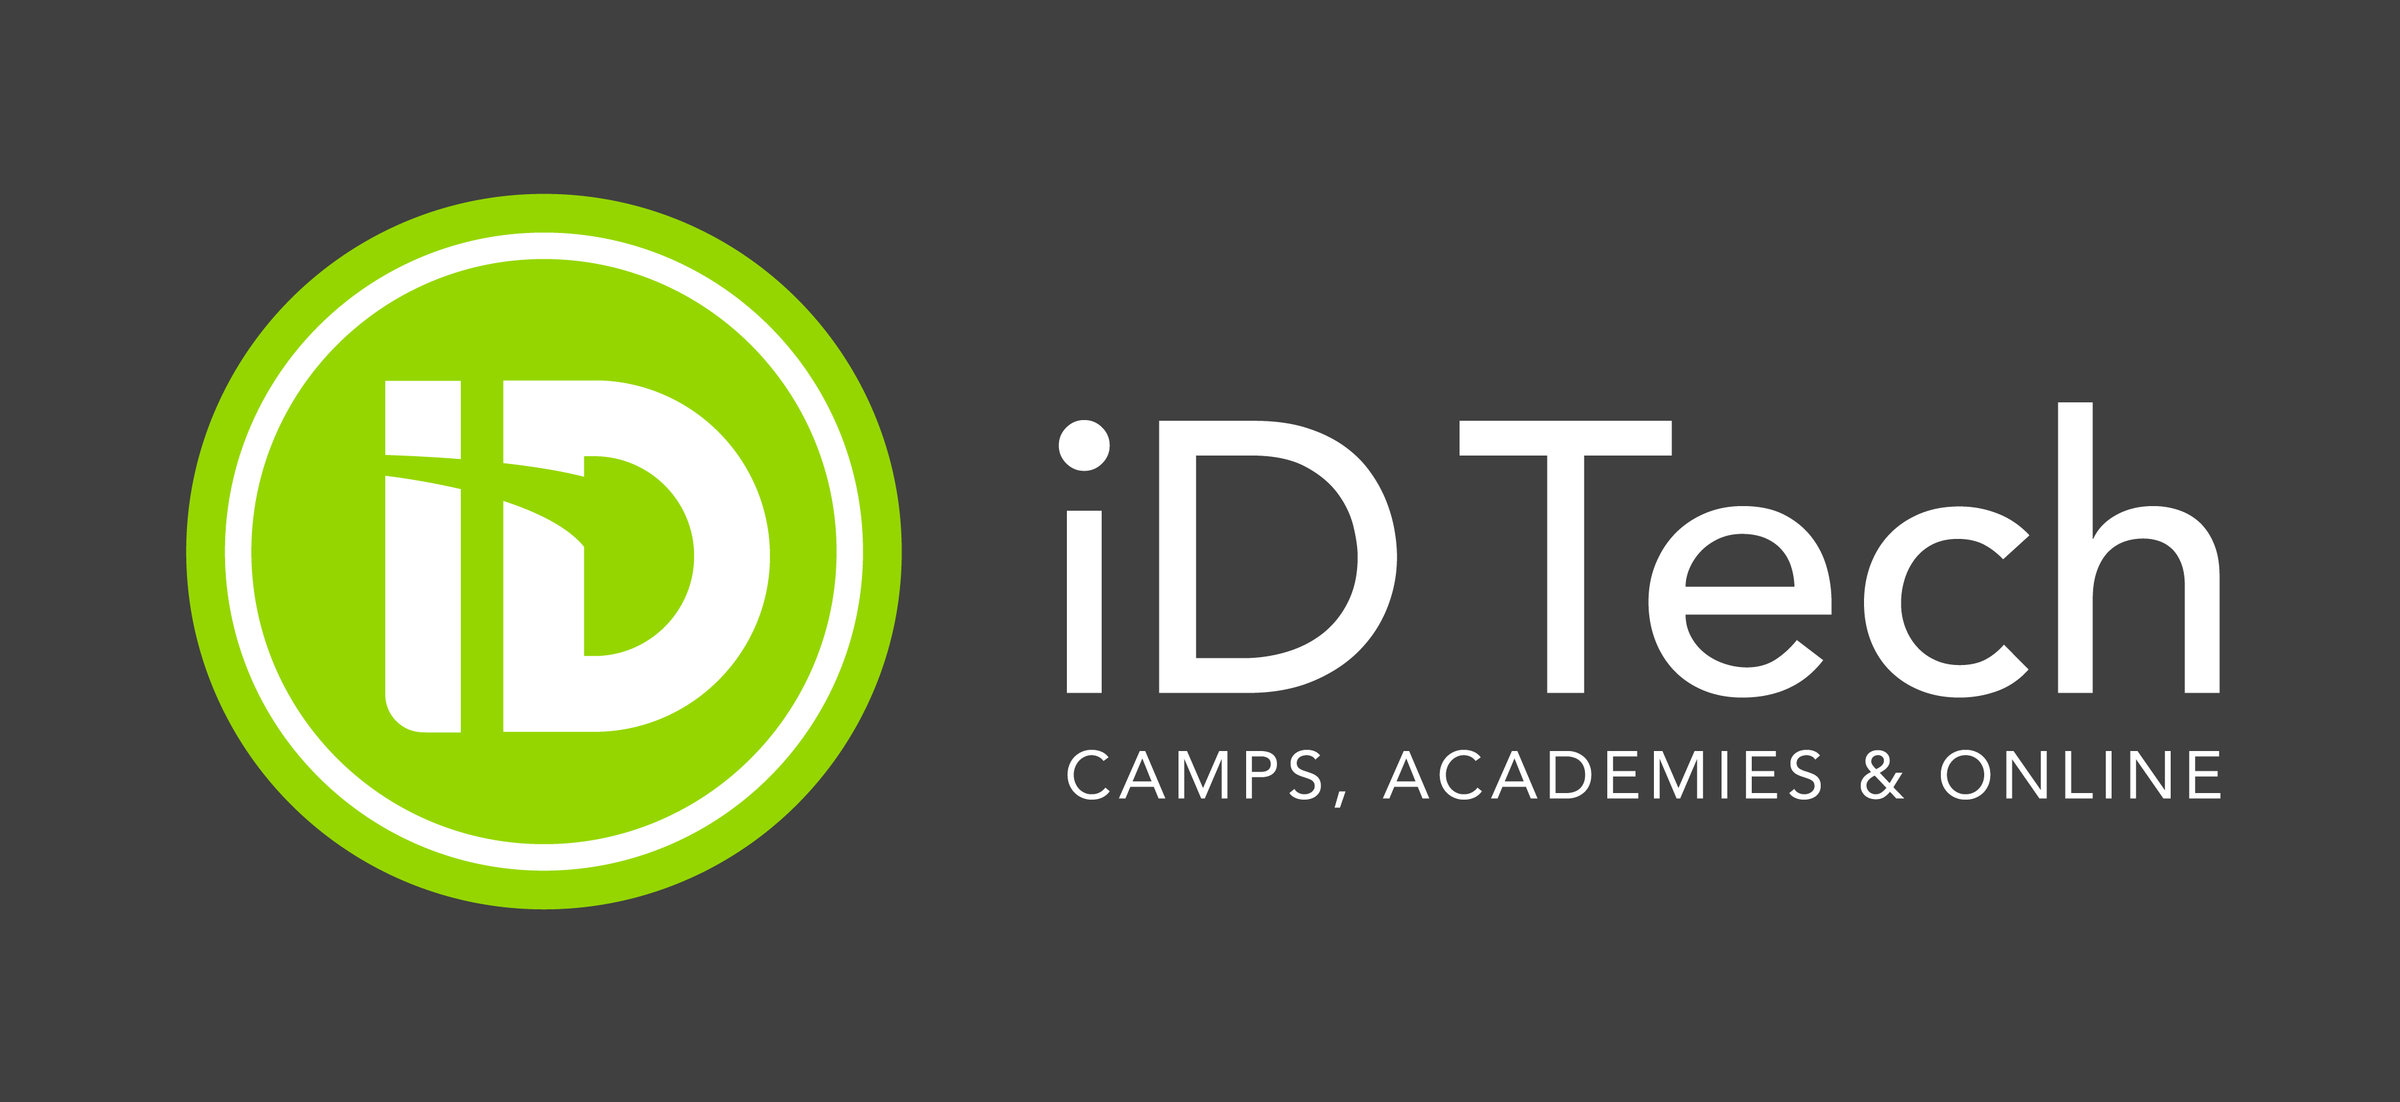 iD Tech Camps: #1 in STEM Education - Held at College of William and Mary